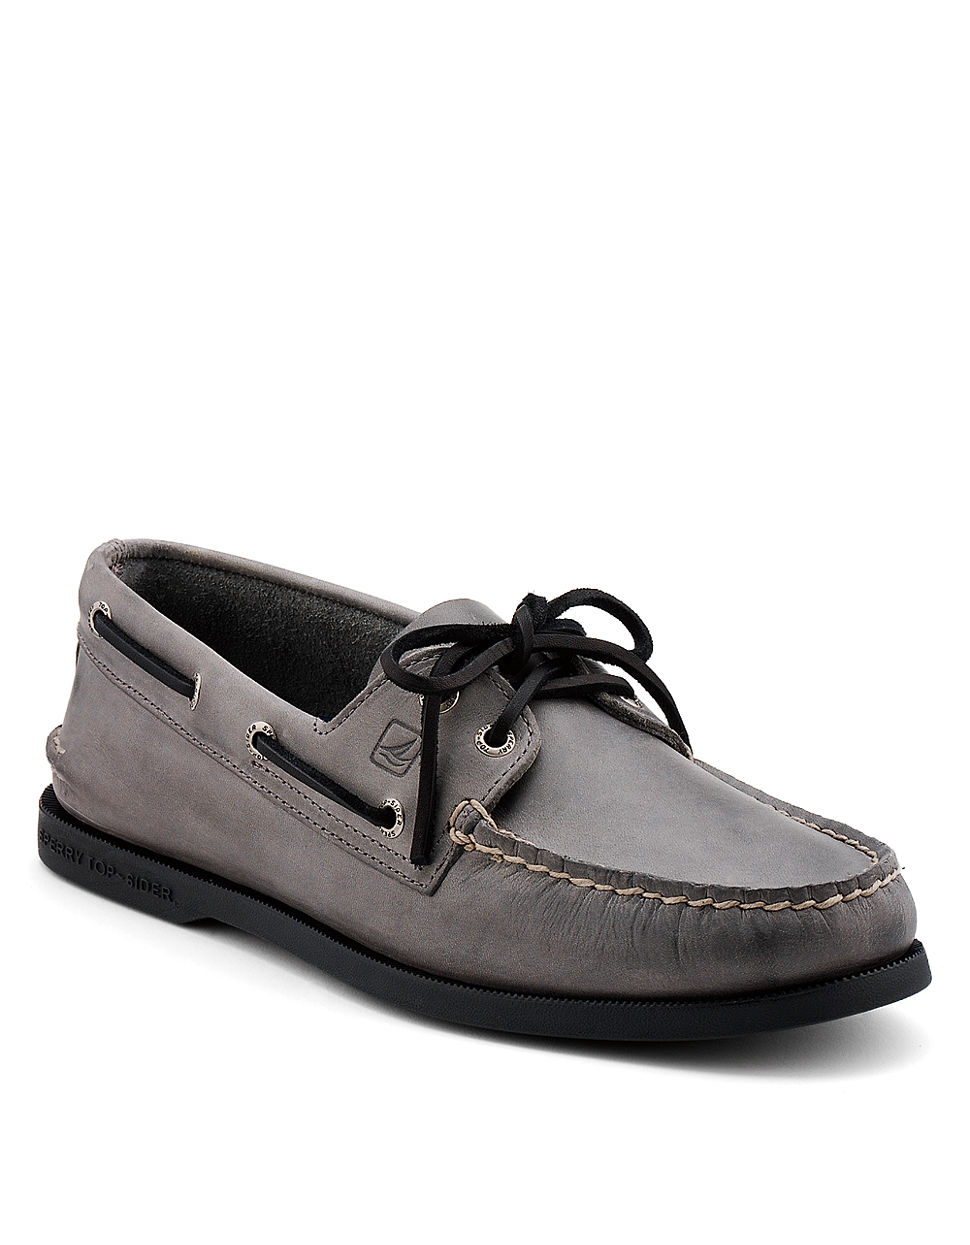 Ao 2 Eye Leather Boat Shoes sperry gray boat shoes